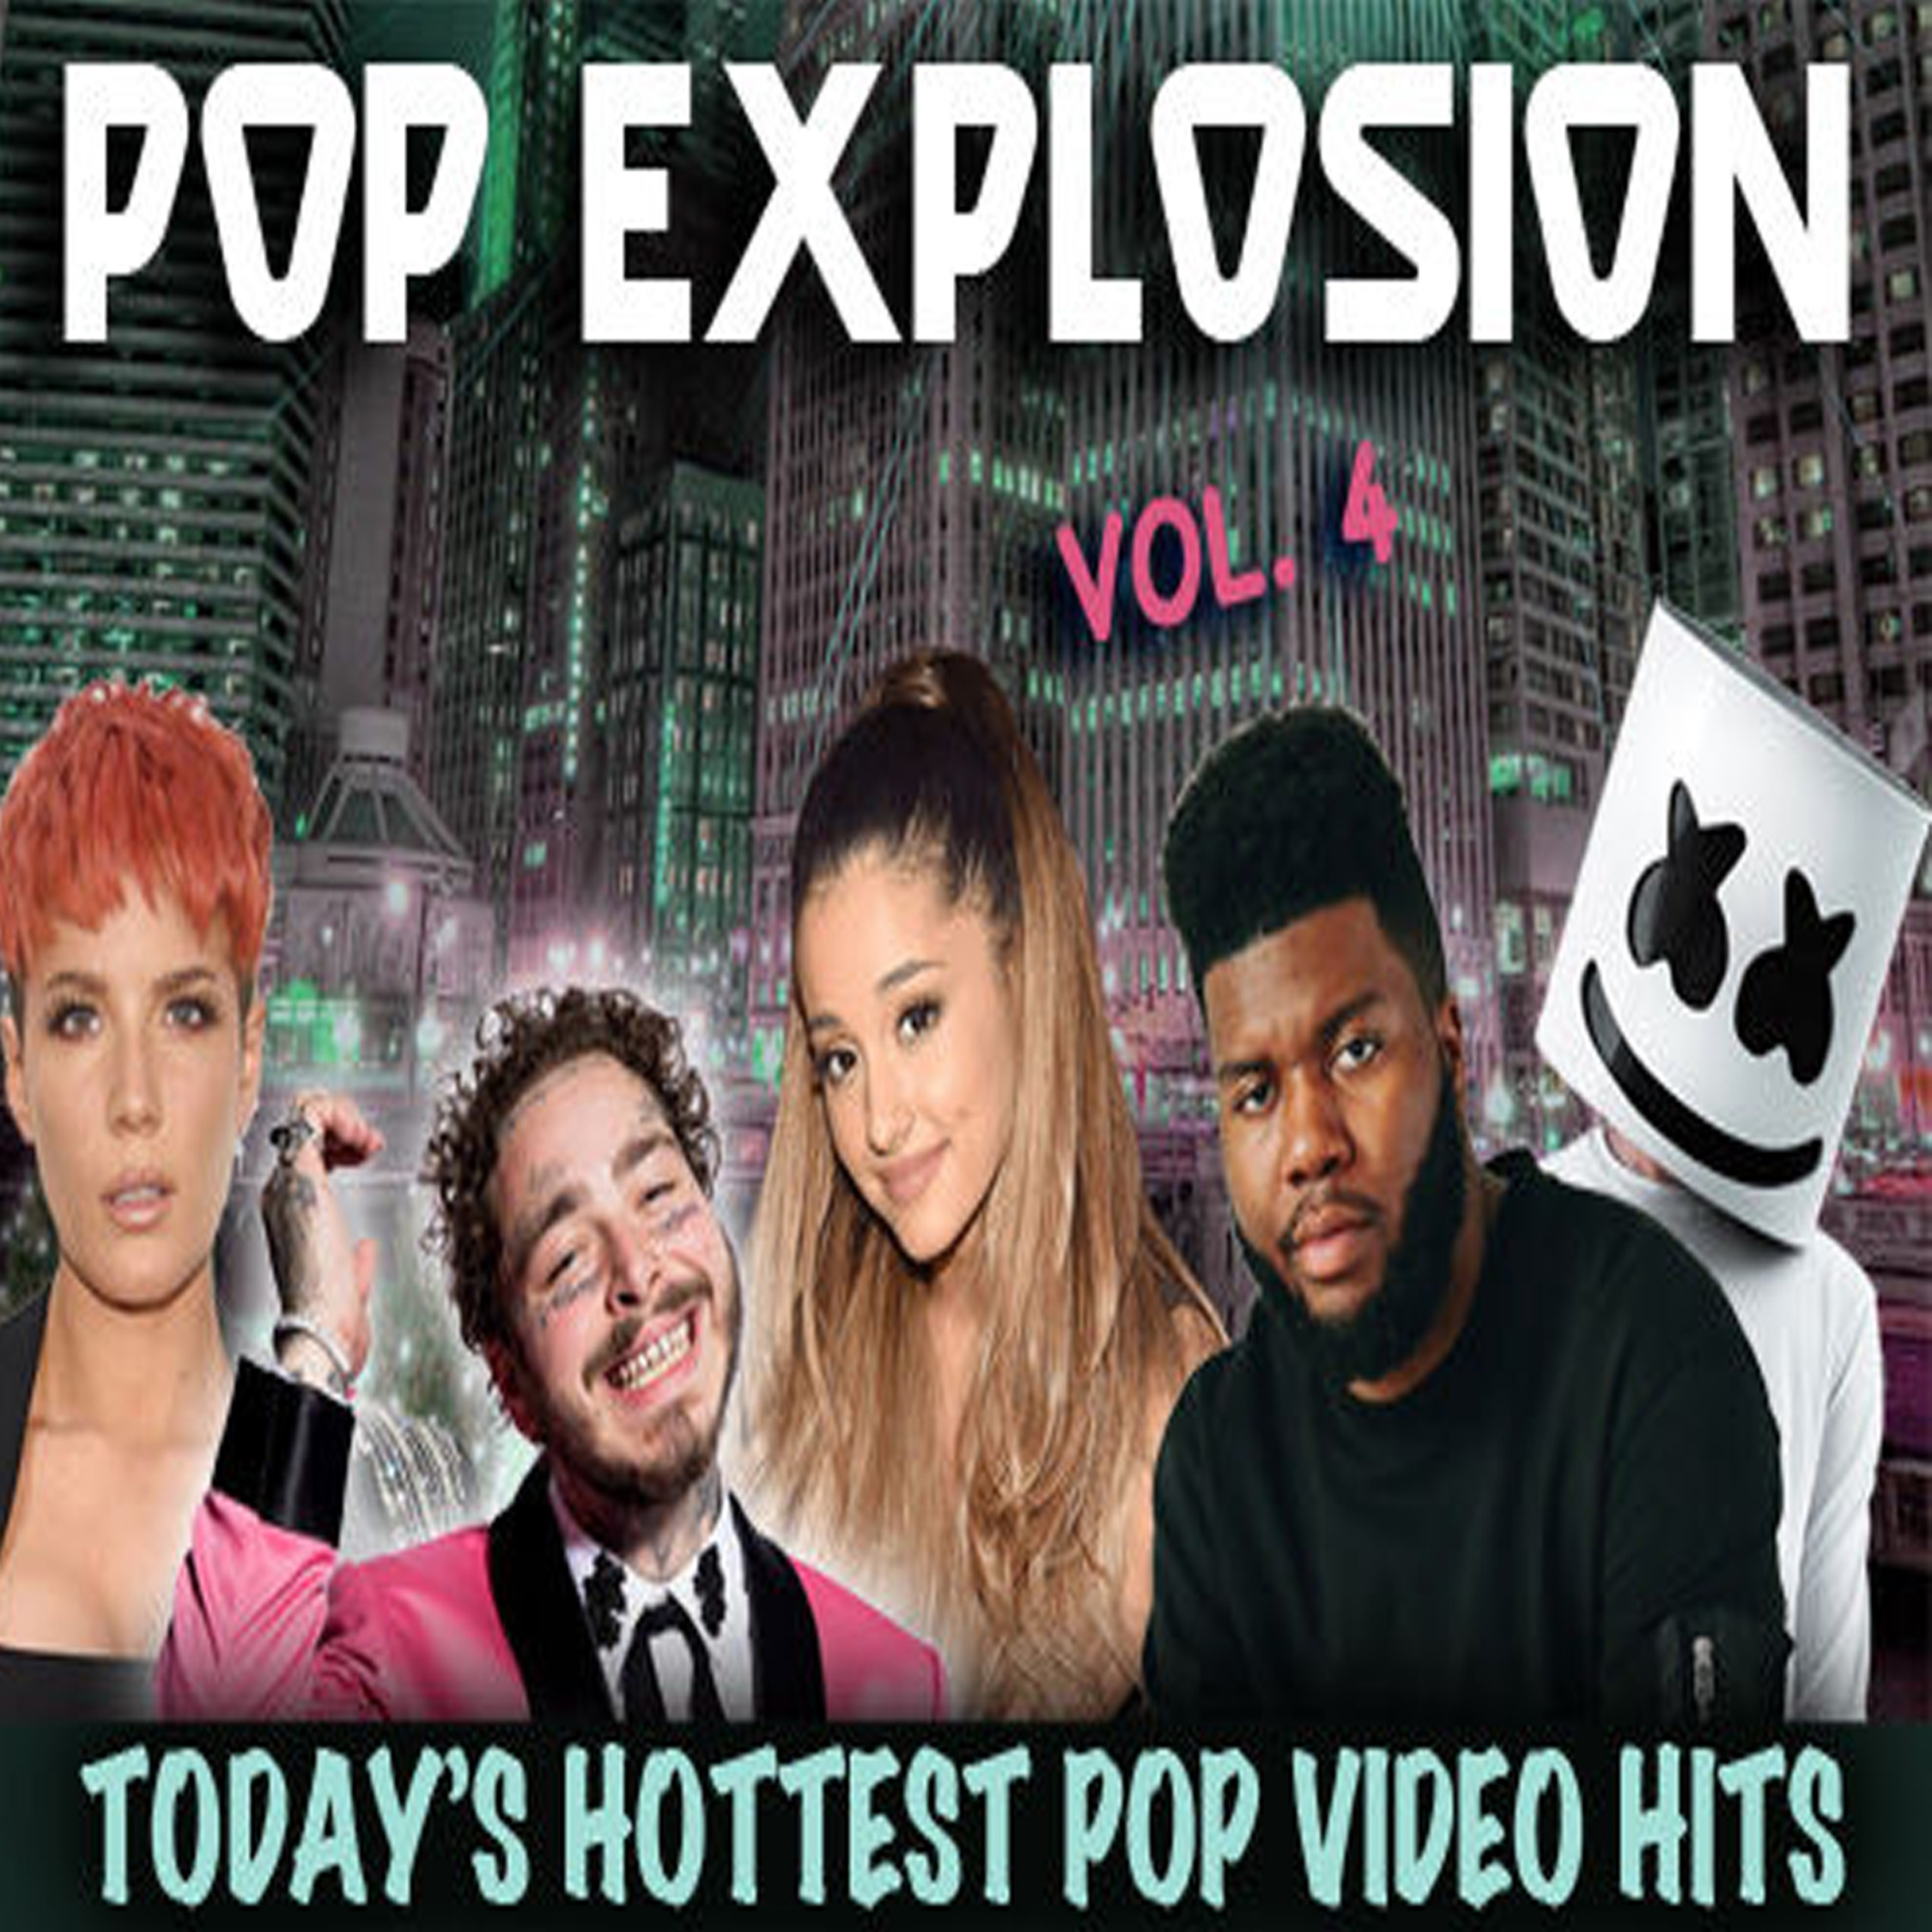 Pop Explosion Vol. 4 - Music Video Collection MP4 Videos